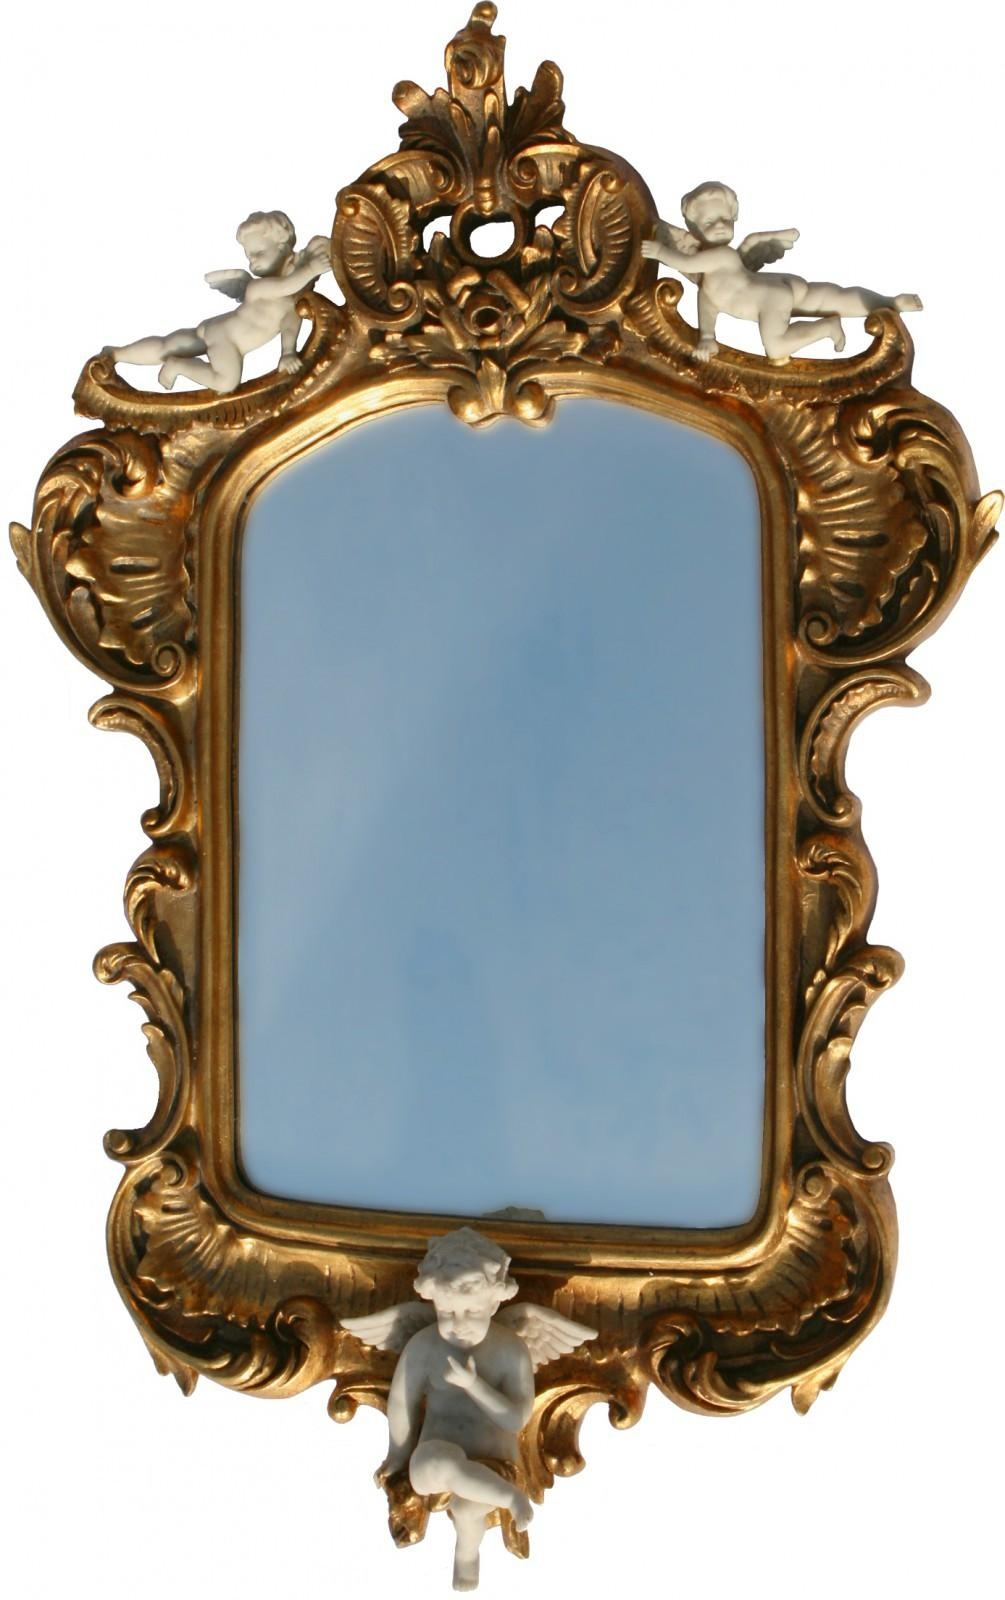 Angel Motif Baroque Mirror In Gold Wooden Frame With Three White Intended For Gold Baroque Mirror (Image 3 of 20)